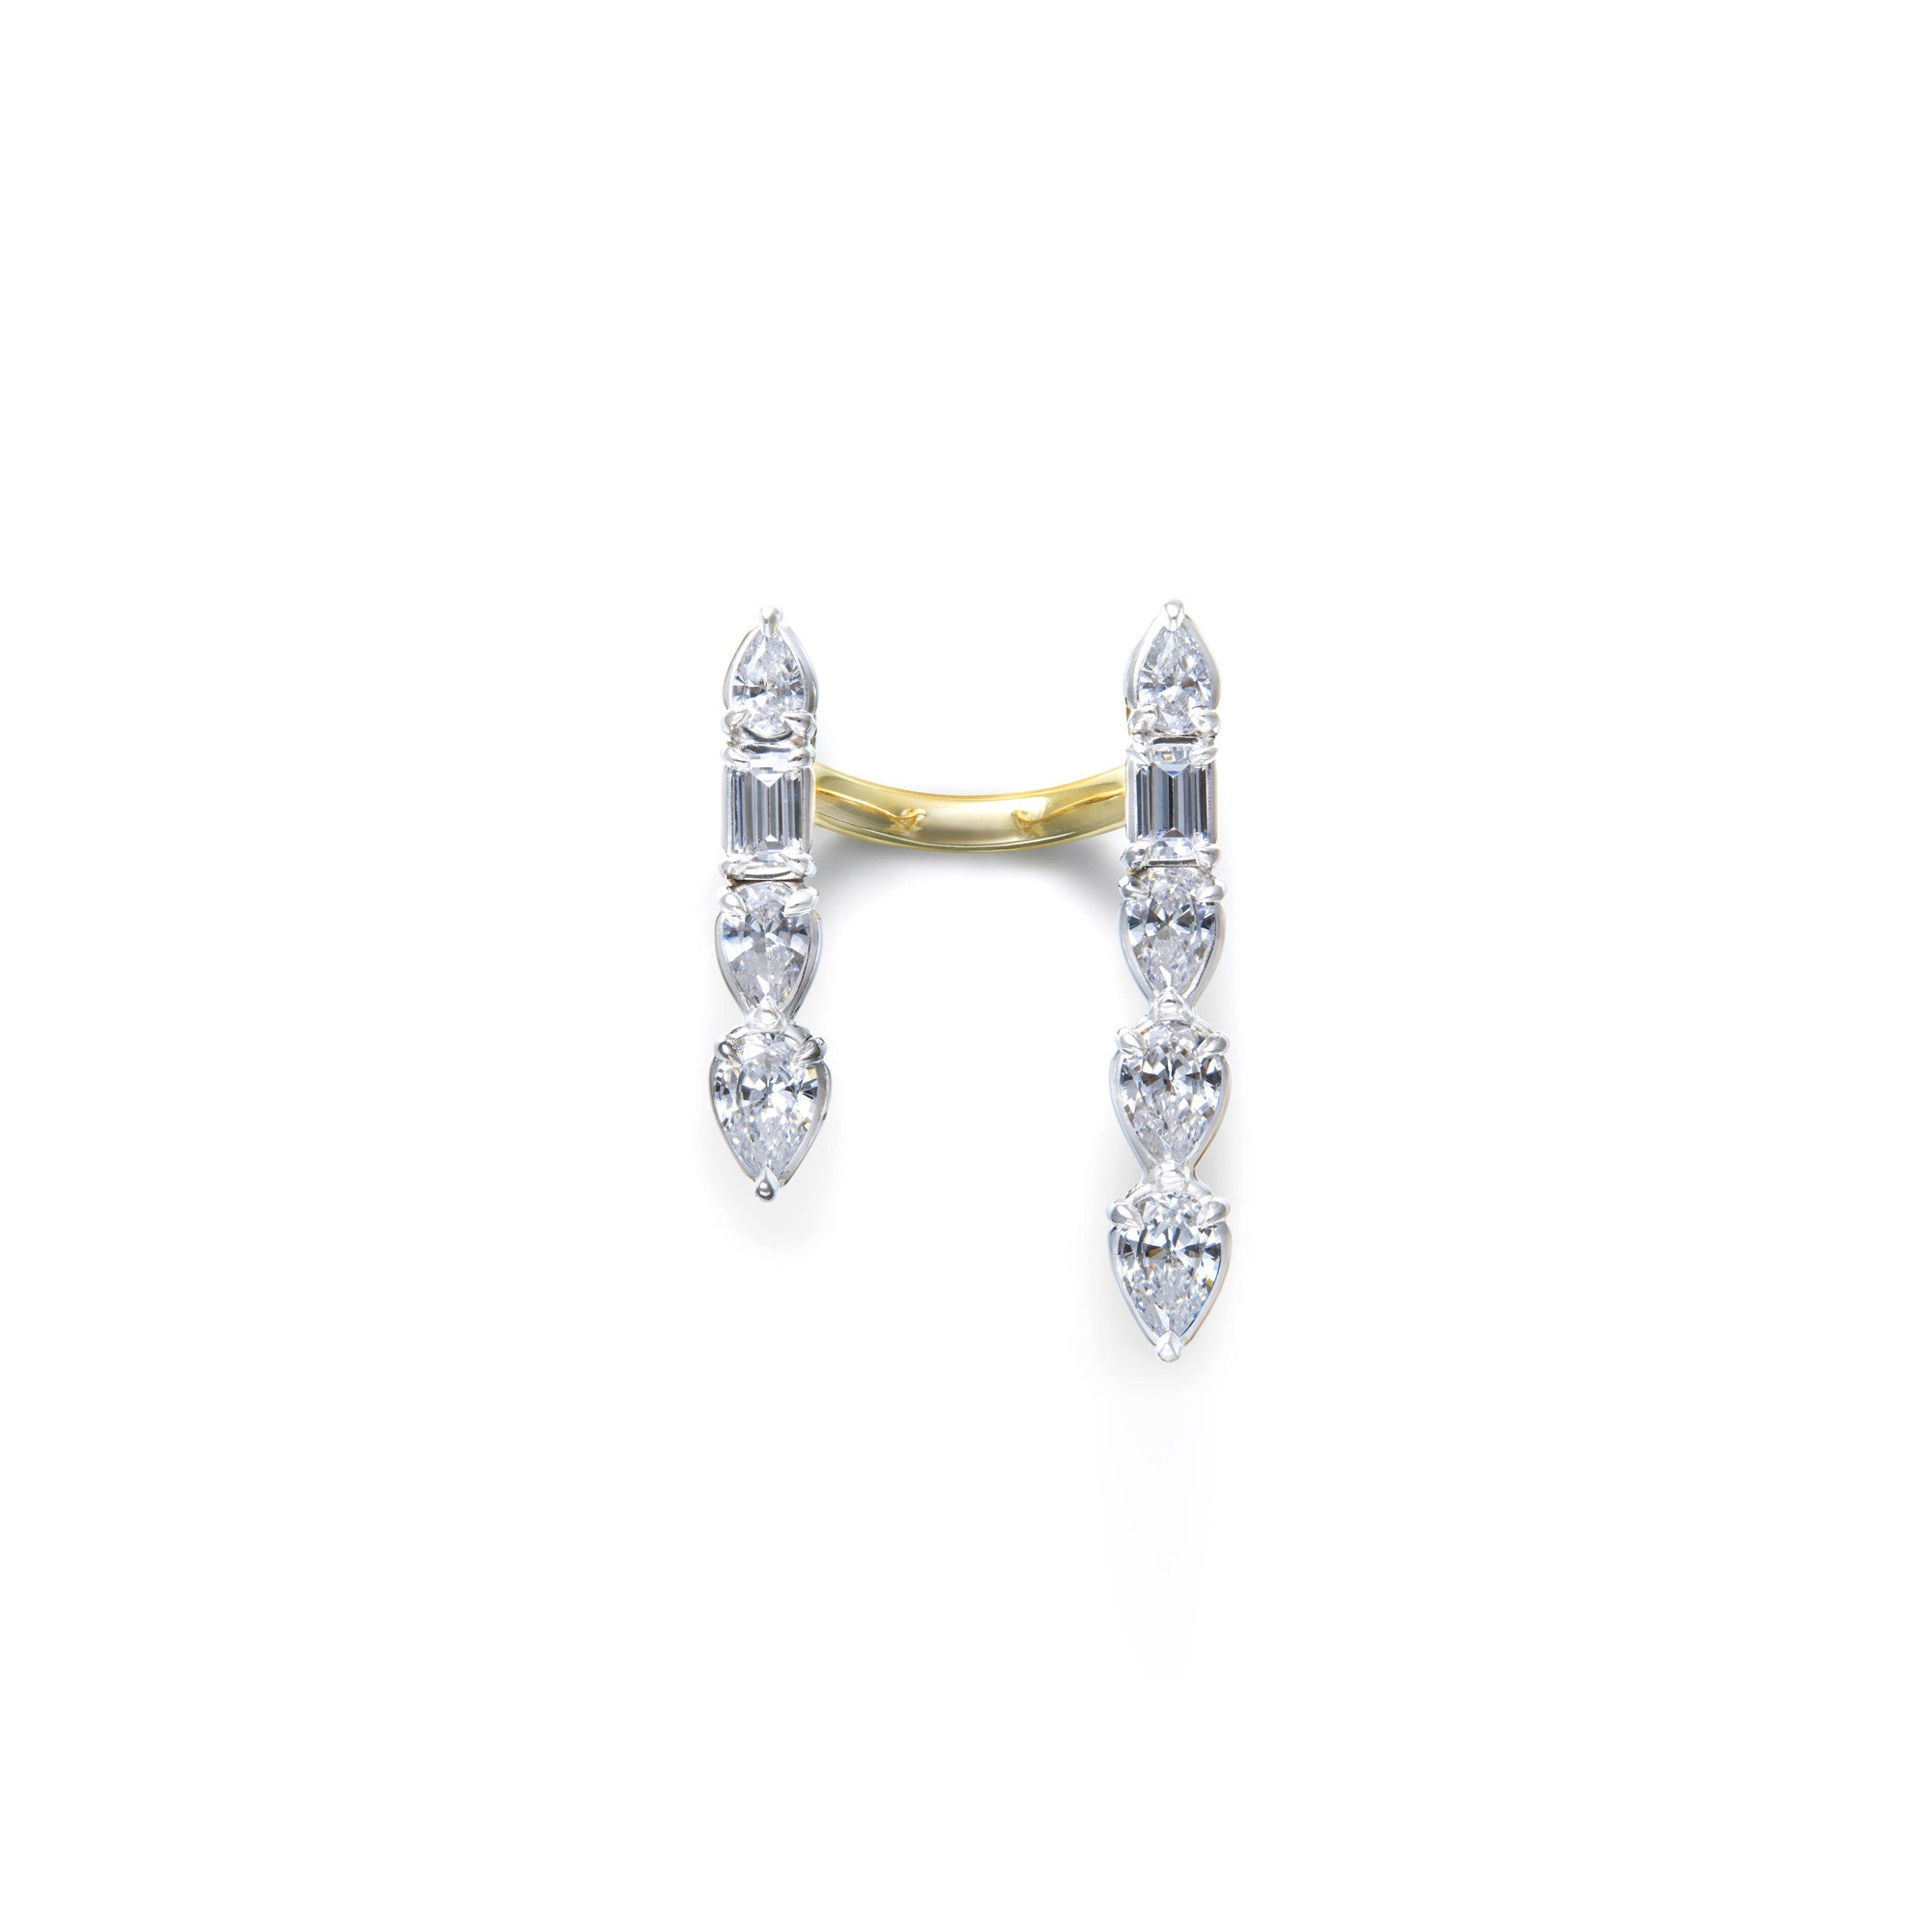 Pear- and baguette-shaped white diamonds floating cuffs